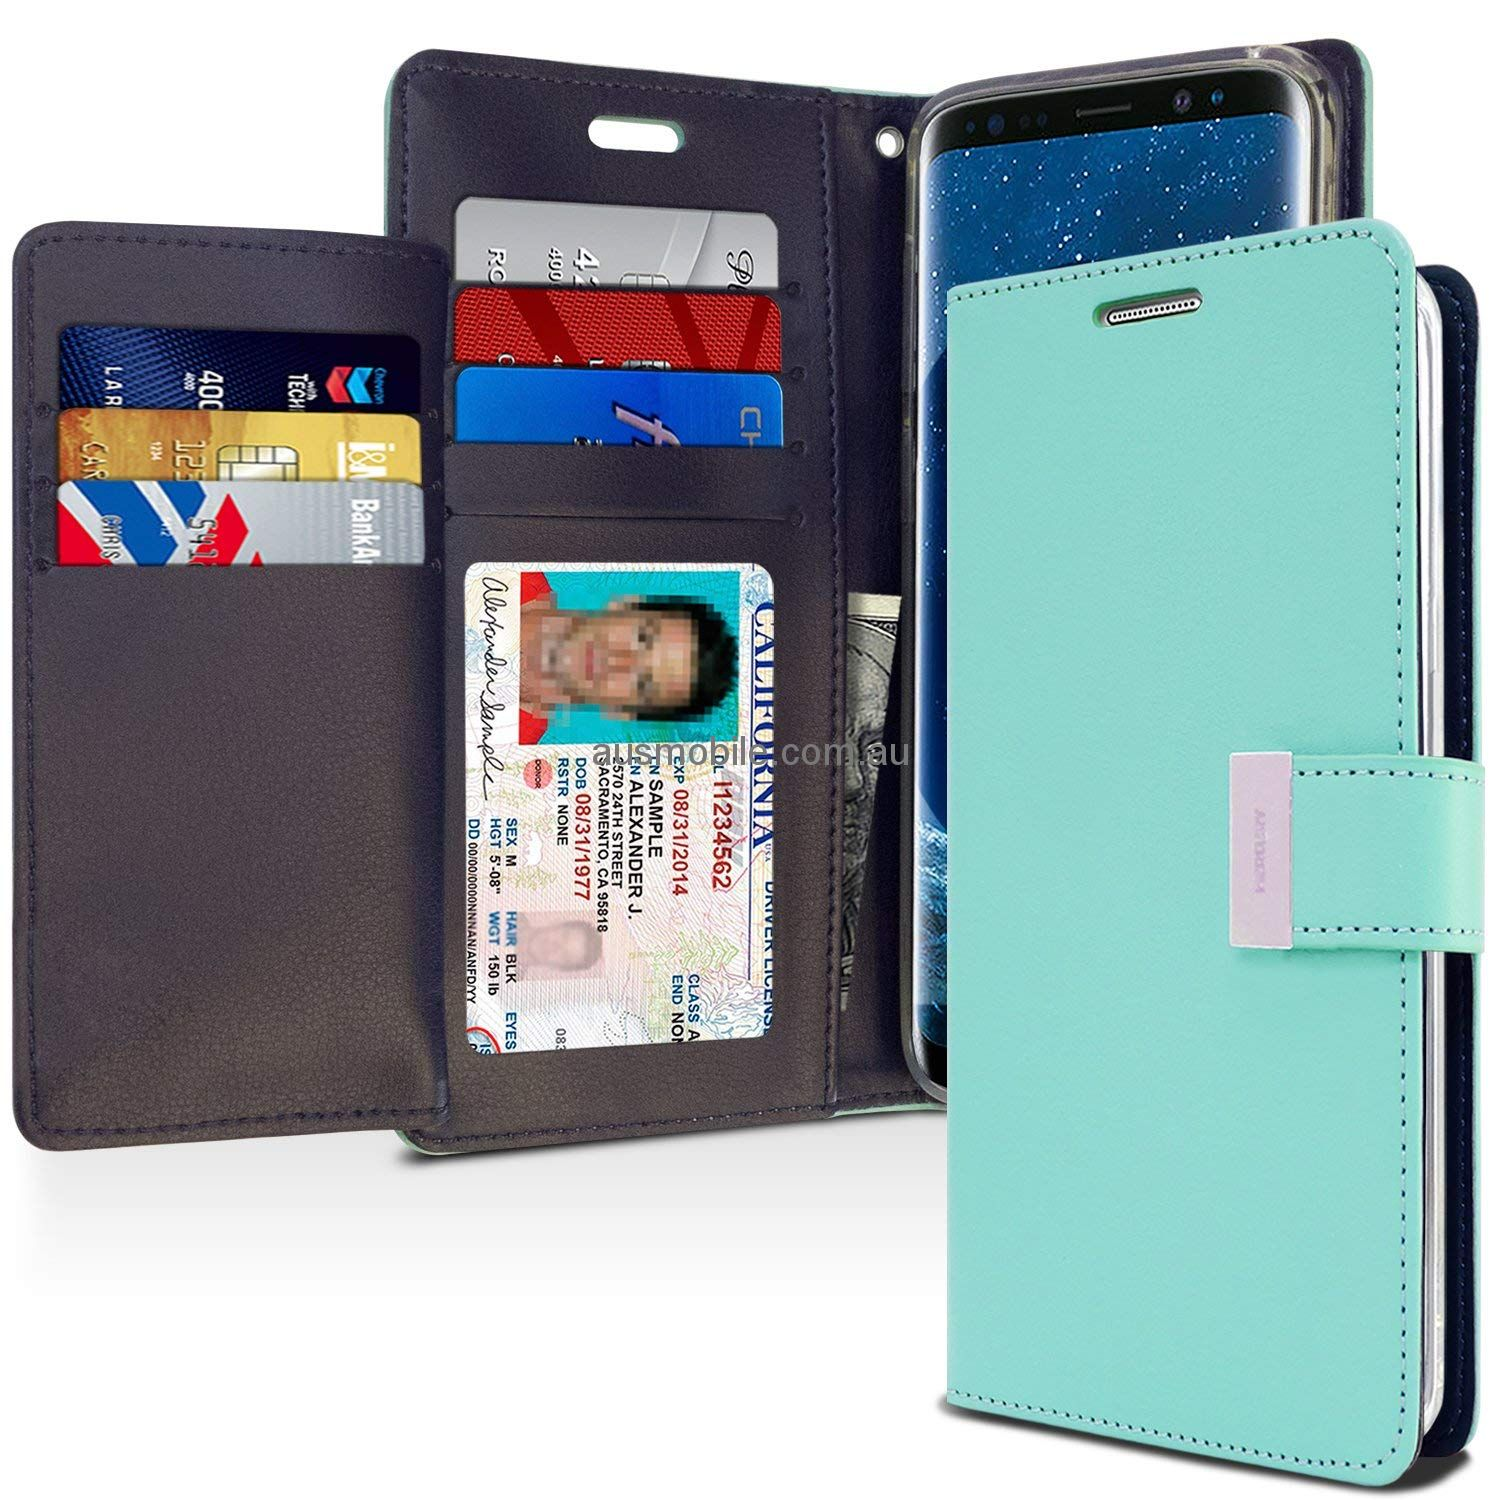 Samsung Galaxy S S9 Plus Goospery Rich Diary For S6 Canvas Case Green Mint Navy